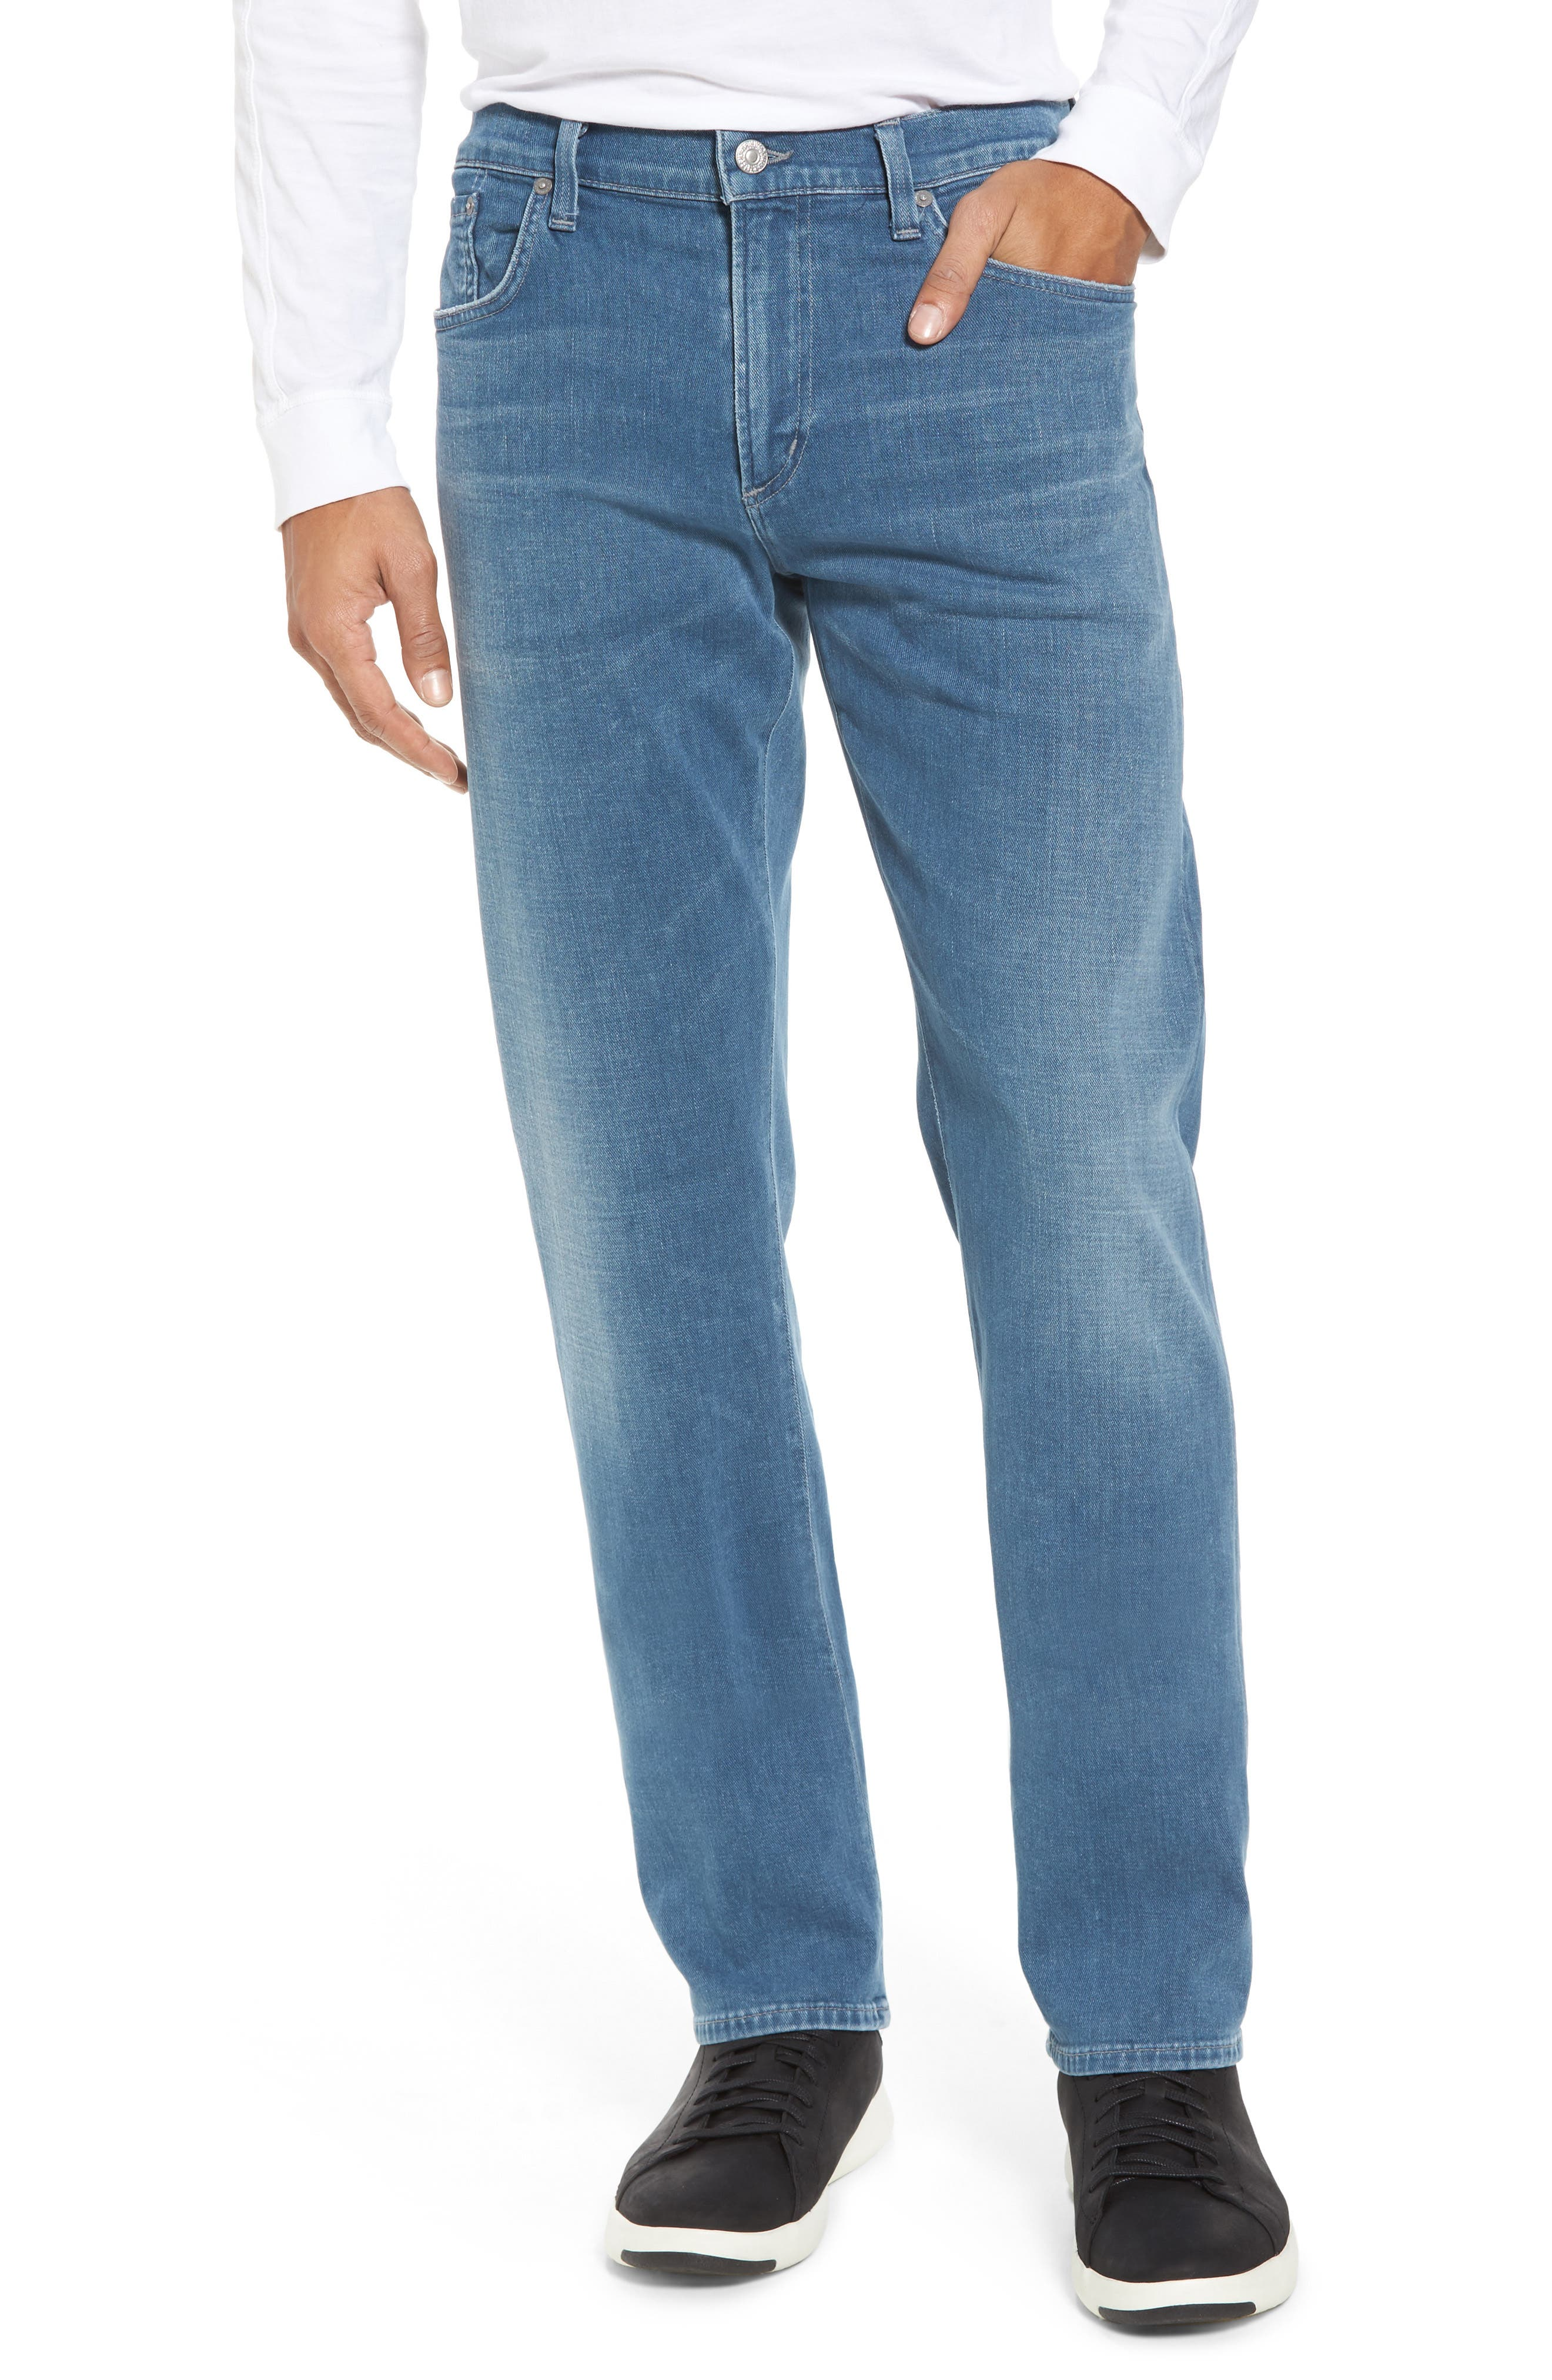 Main Image - Citizens of Humanity Core Slim Fit Jeans (Silverstone)